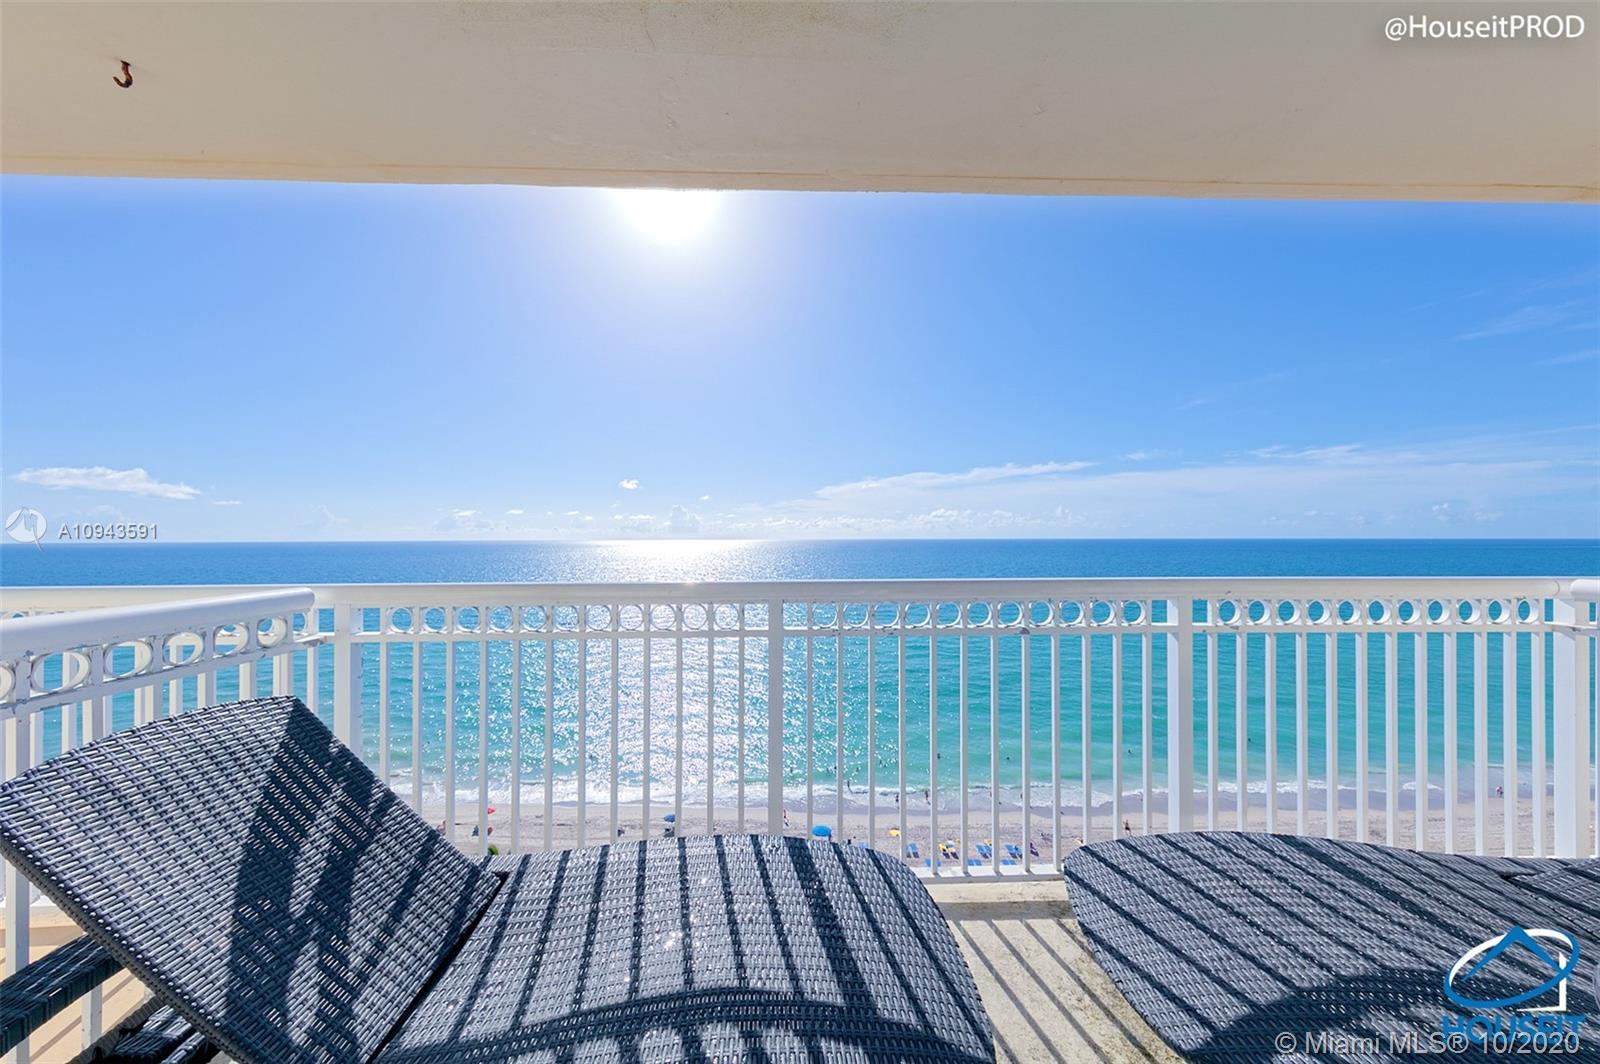 PENTHOUSE LEVEL DIRECT OCEAN VIEW WITH ALL THE WORKS! MODERN VINYL FLOORING, NEW FURNITURE, GRANITE